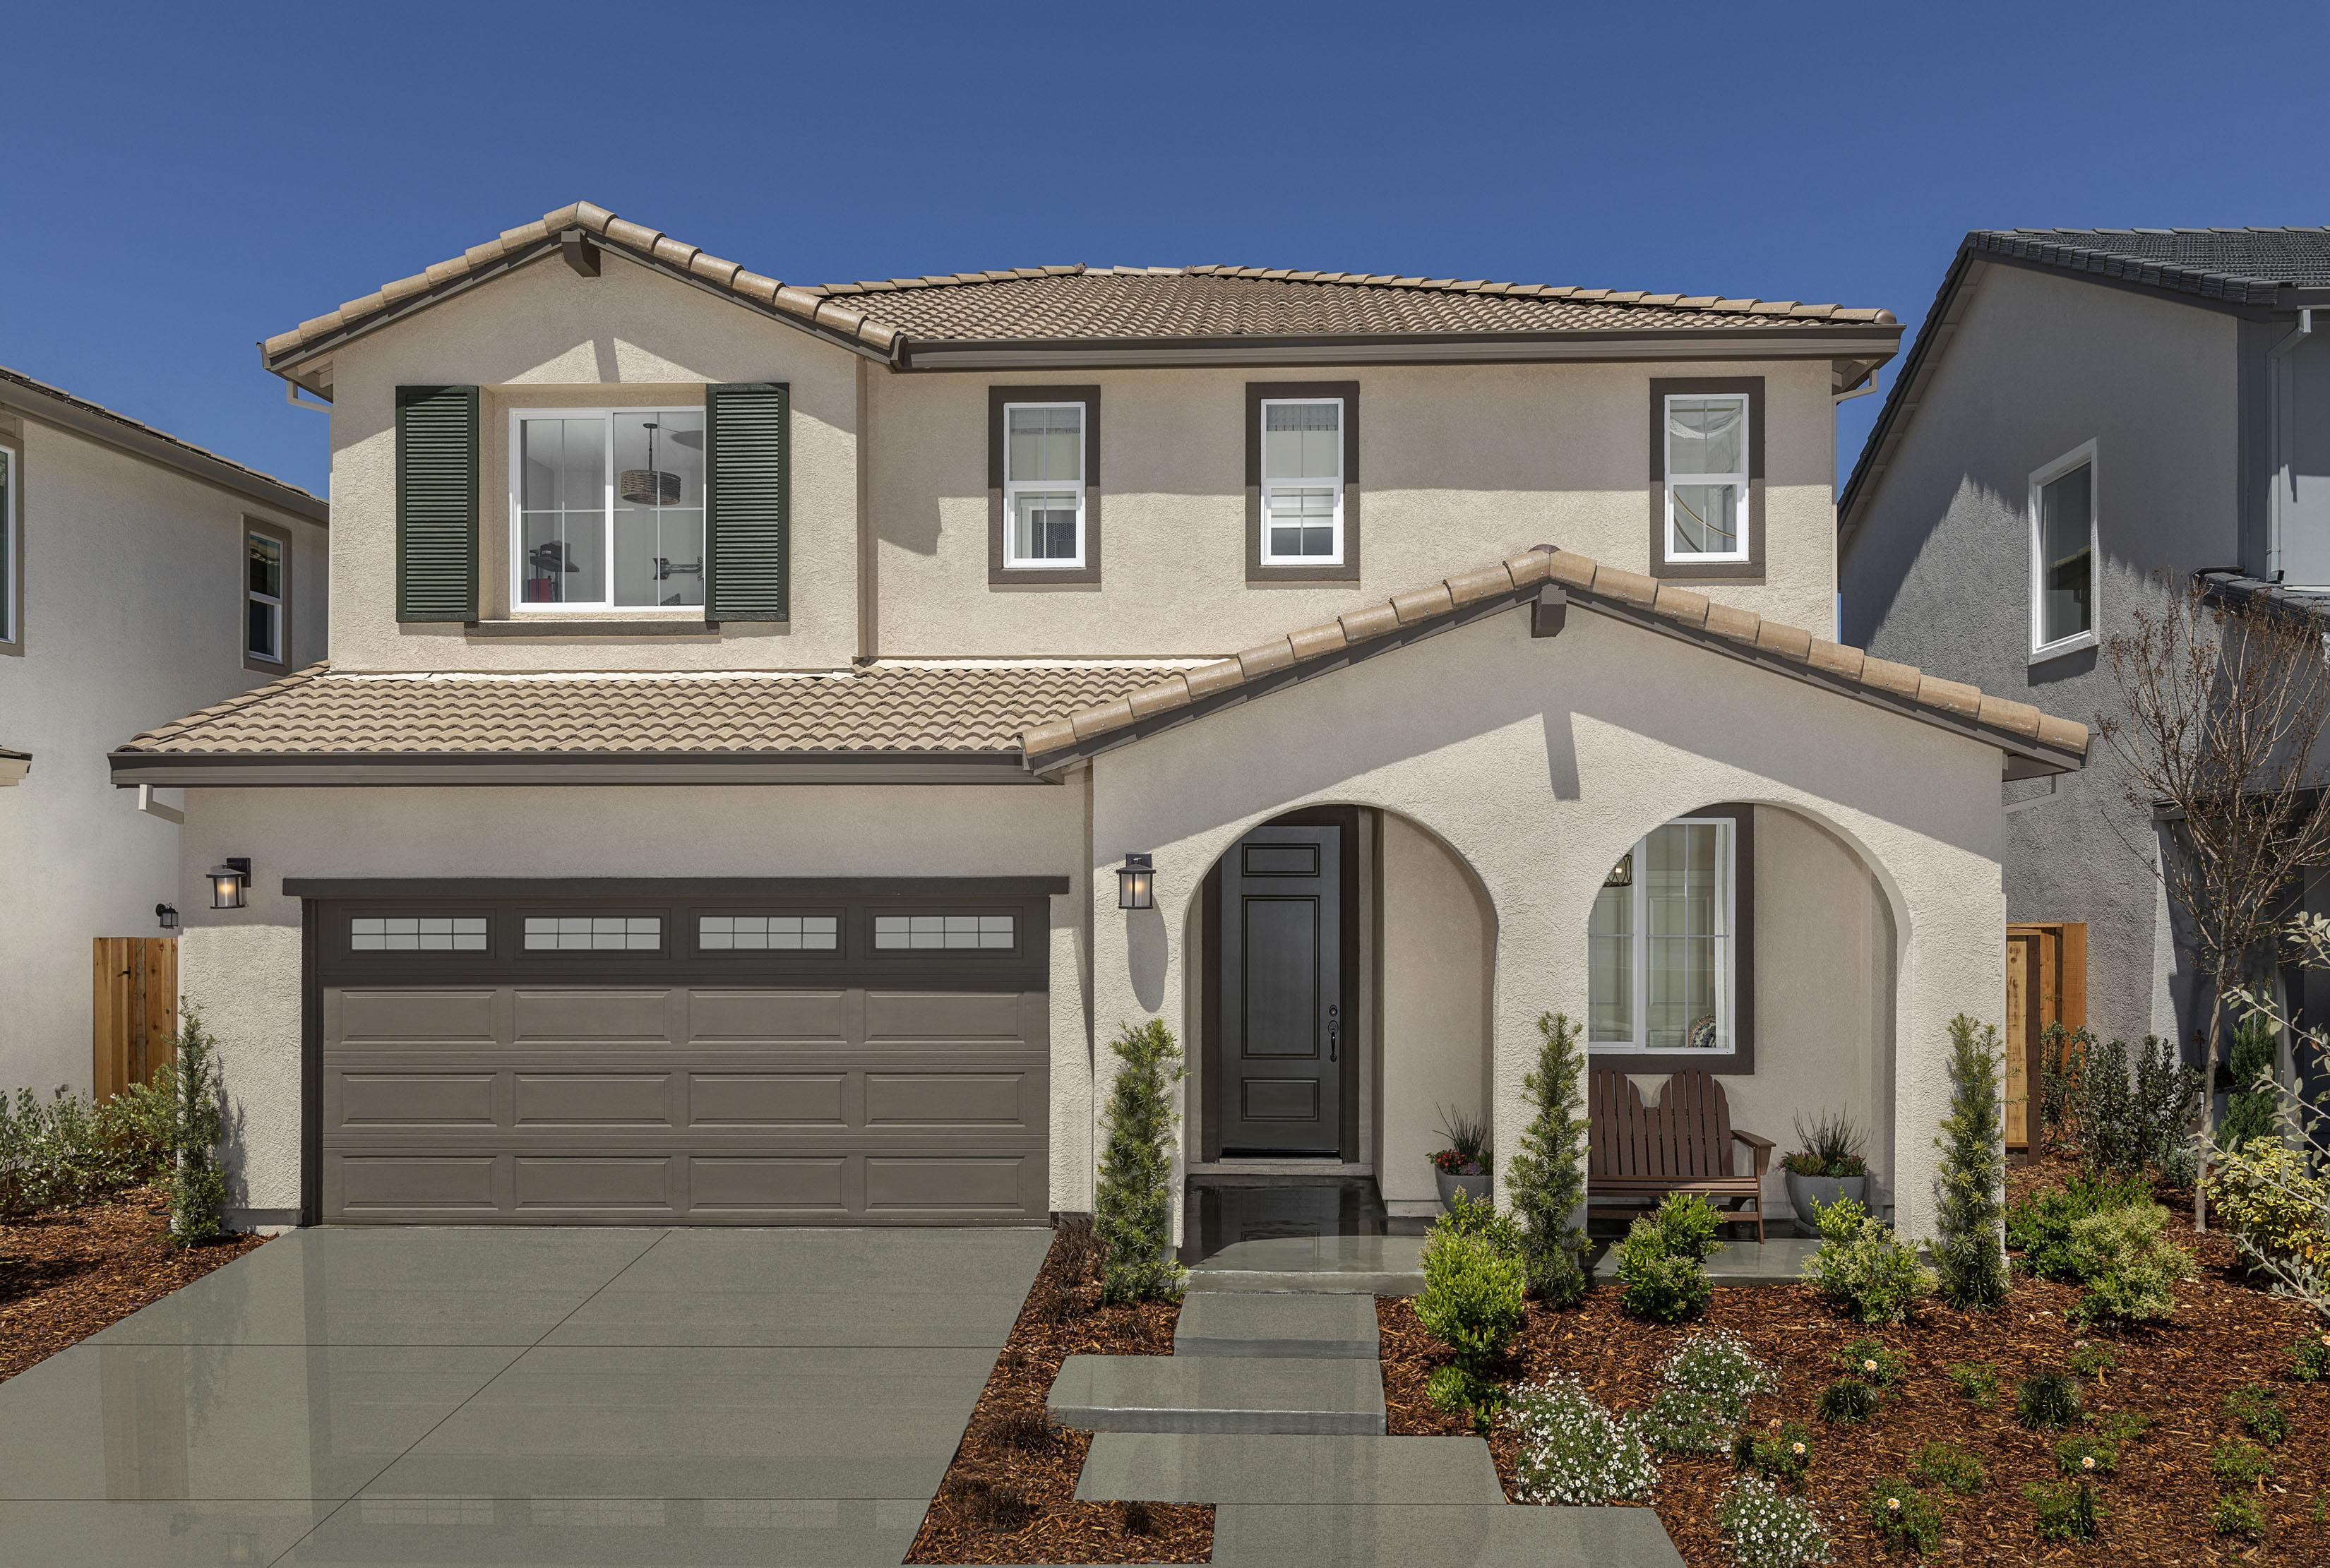 Exterior featured in the Carousel Residence 2 By Kiper Homes in Santa Cruz, CA